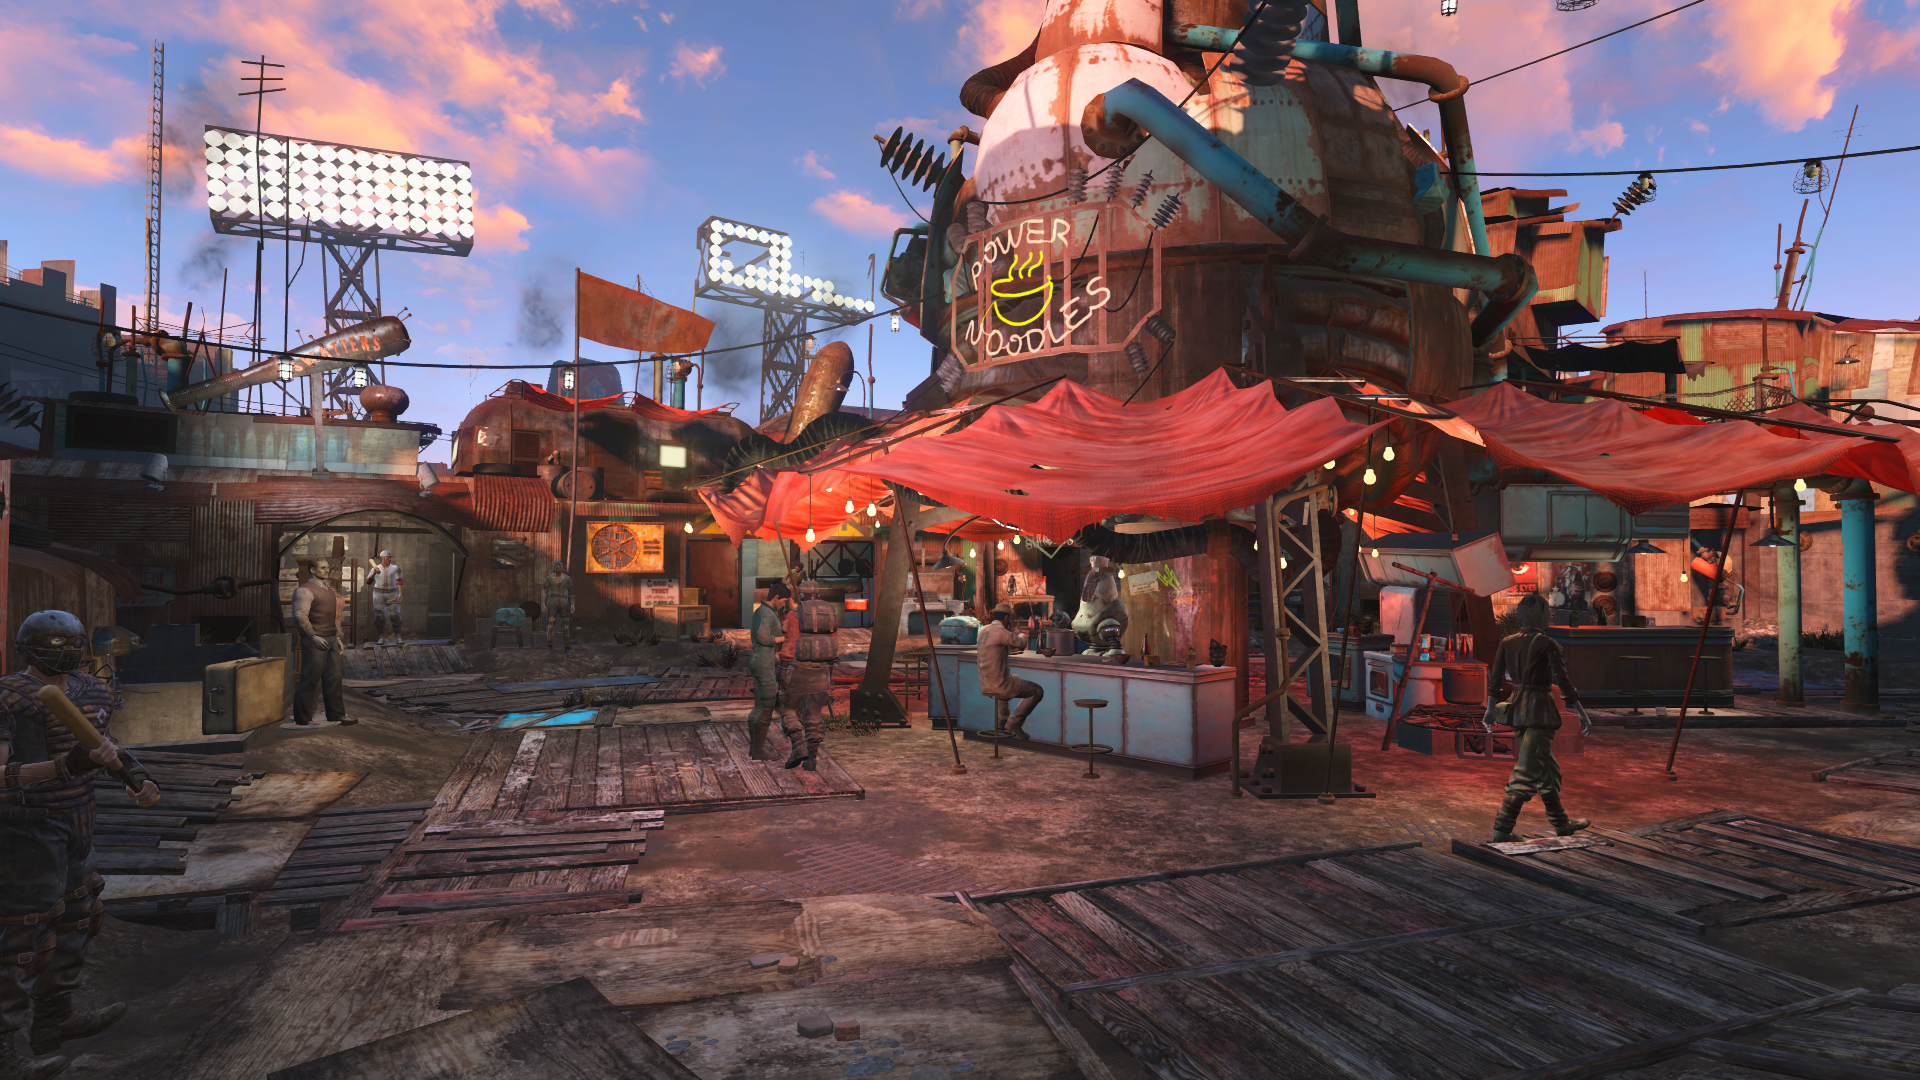 Fallout 4 Patch 1.3 Details Step Out into the Irradiated Air